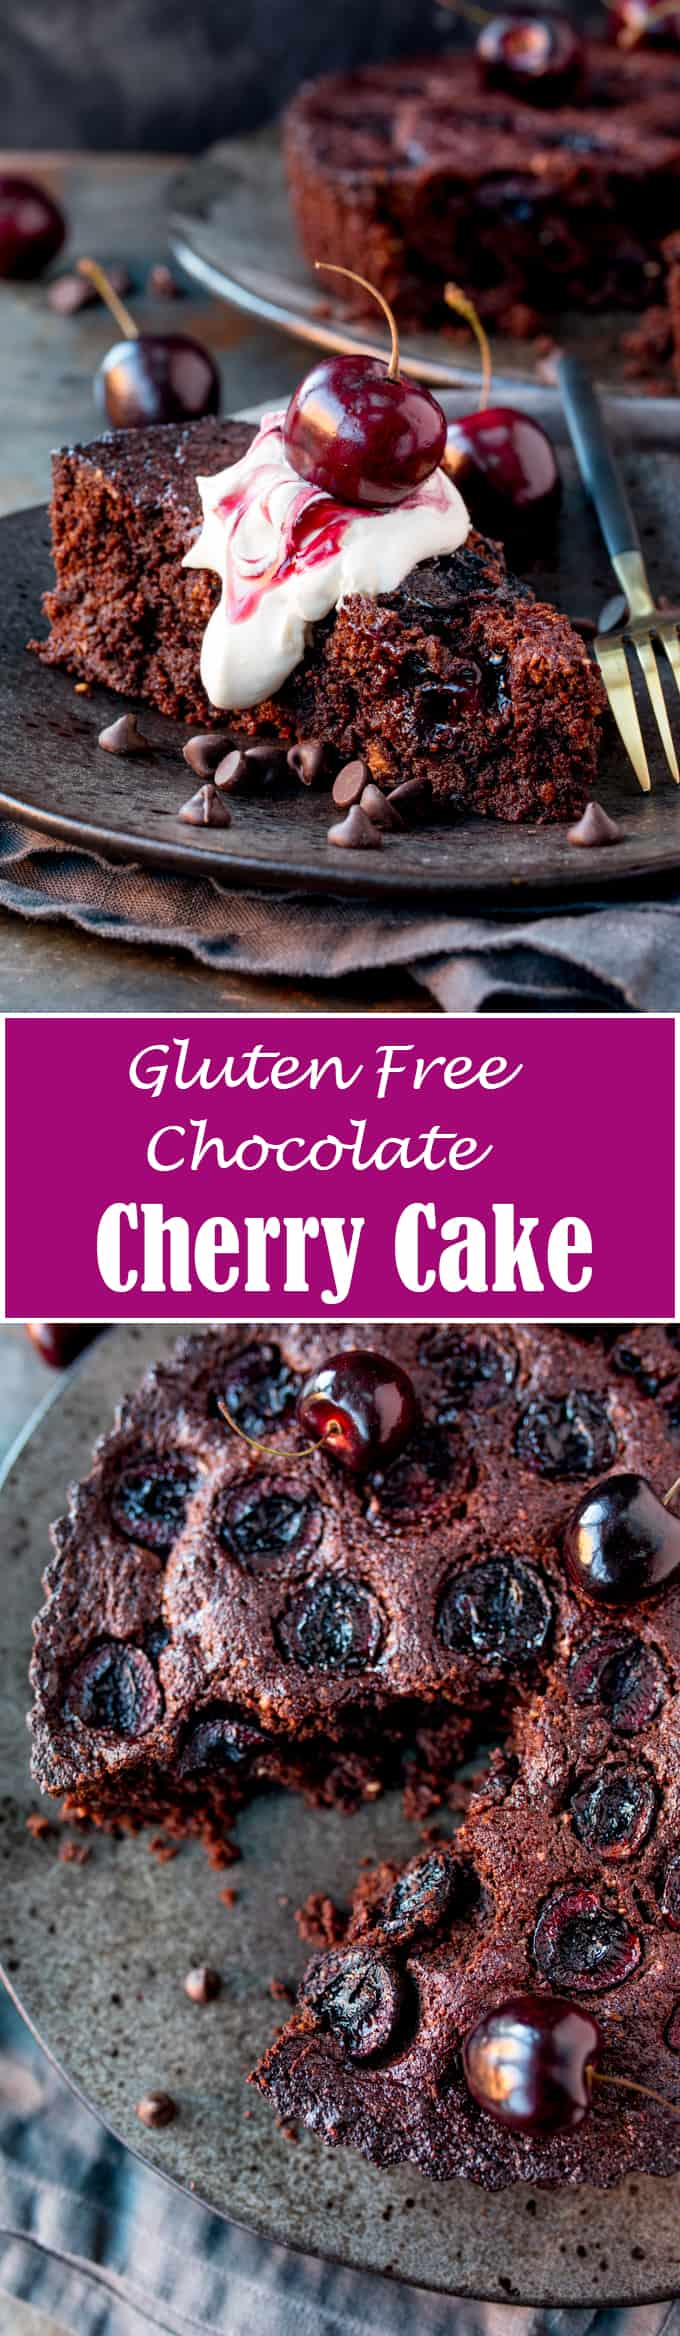 If you're looking for a chocolatey, rich dessert this Flourless Chocolate Cherry Cake is for you. It's simple to make and gluten free too!